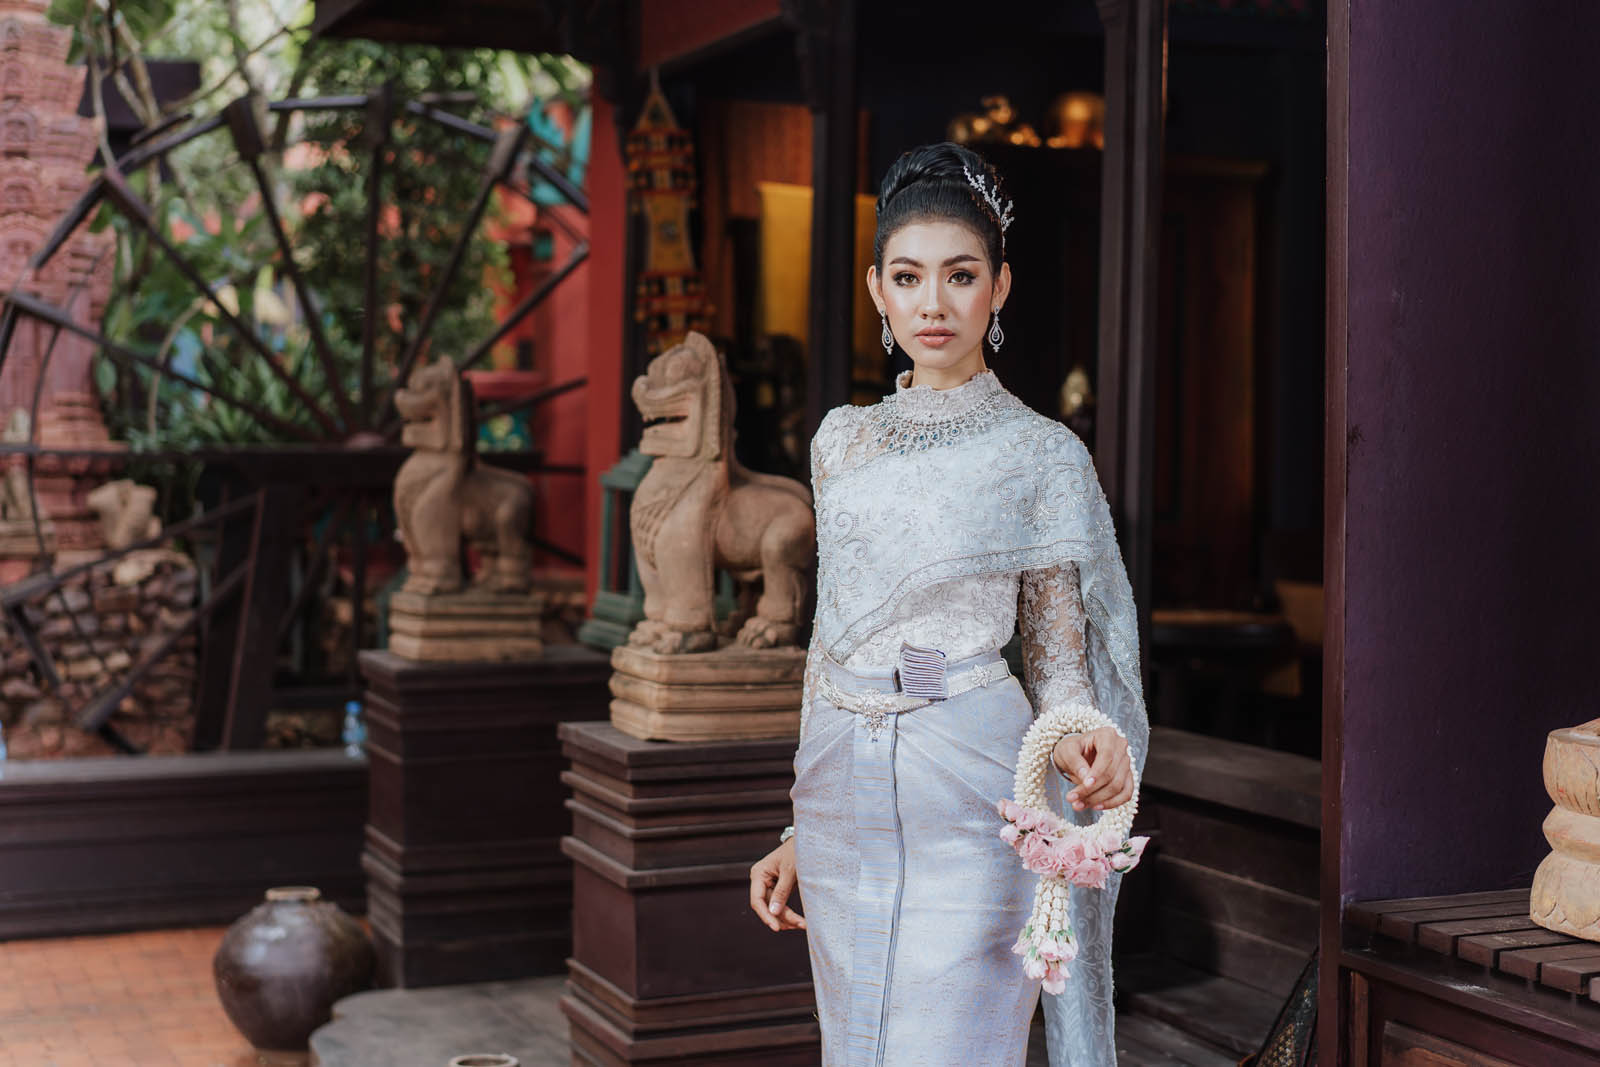 Khmer girl with traditional dress